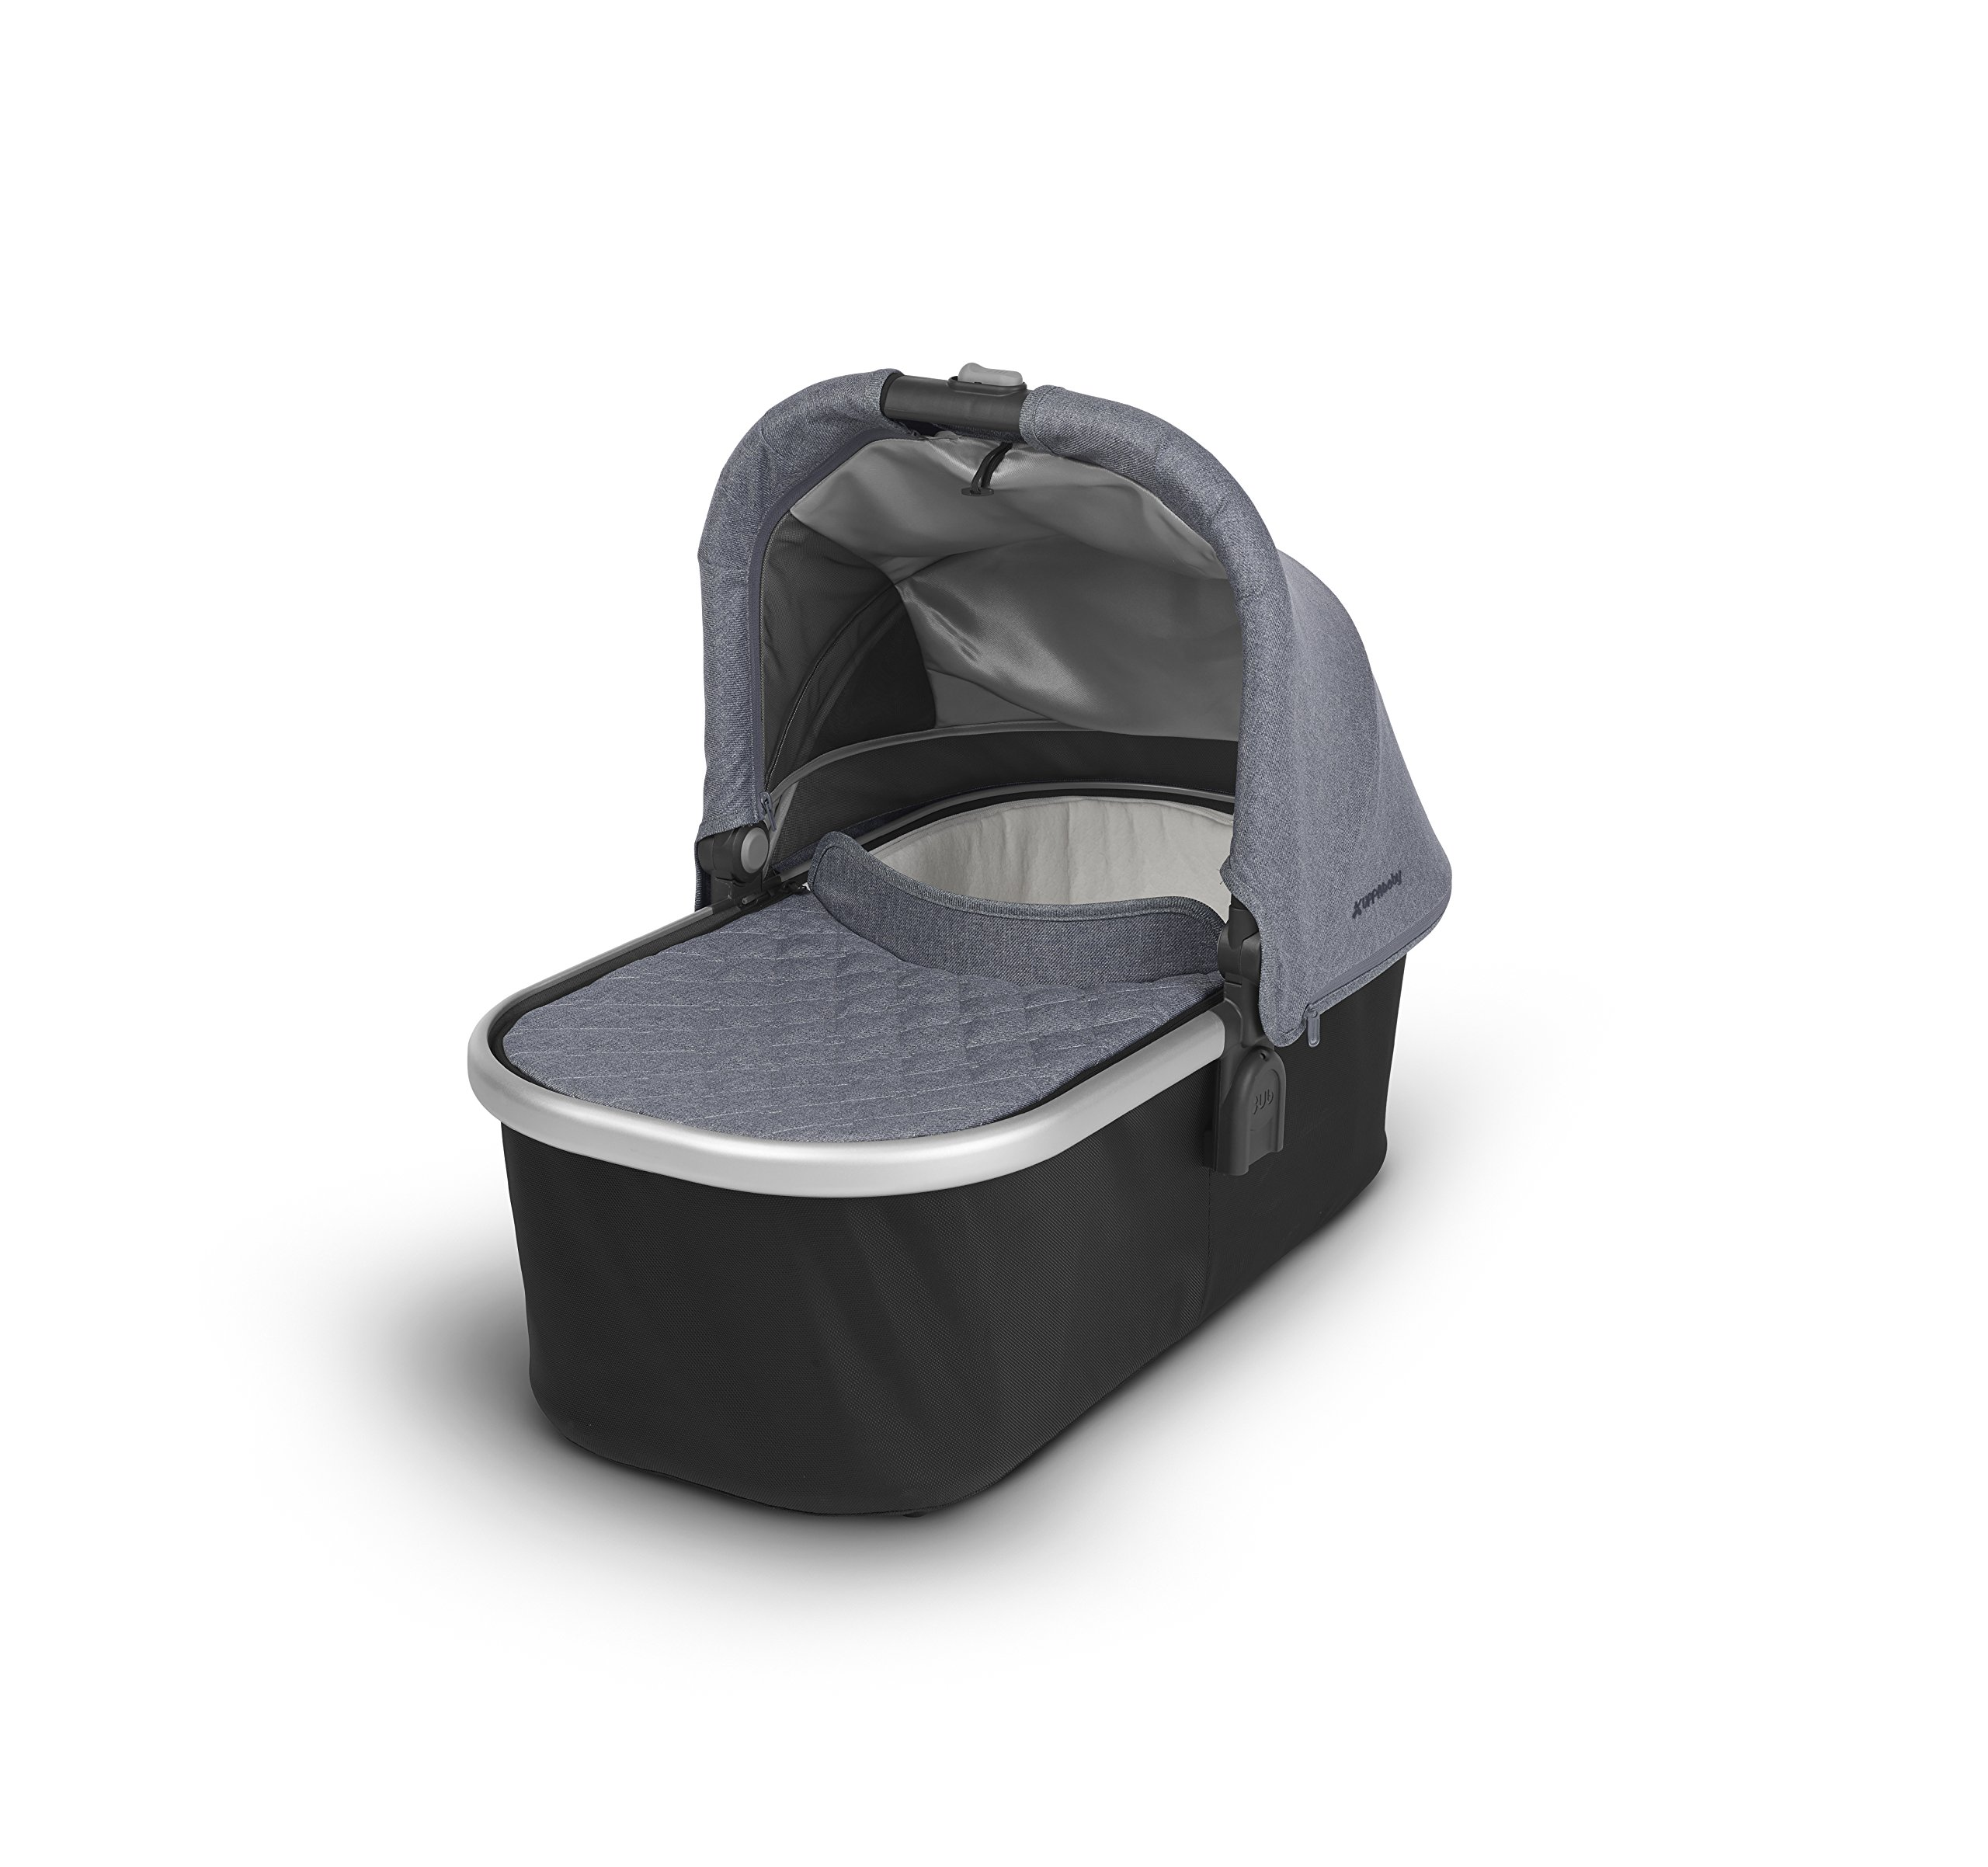 2018 UPPAbaby Bassinet -Gregory (Blue Melange/Silver) by UPPAbaby